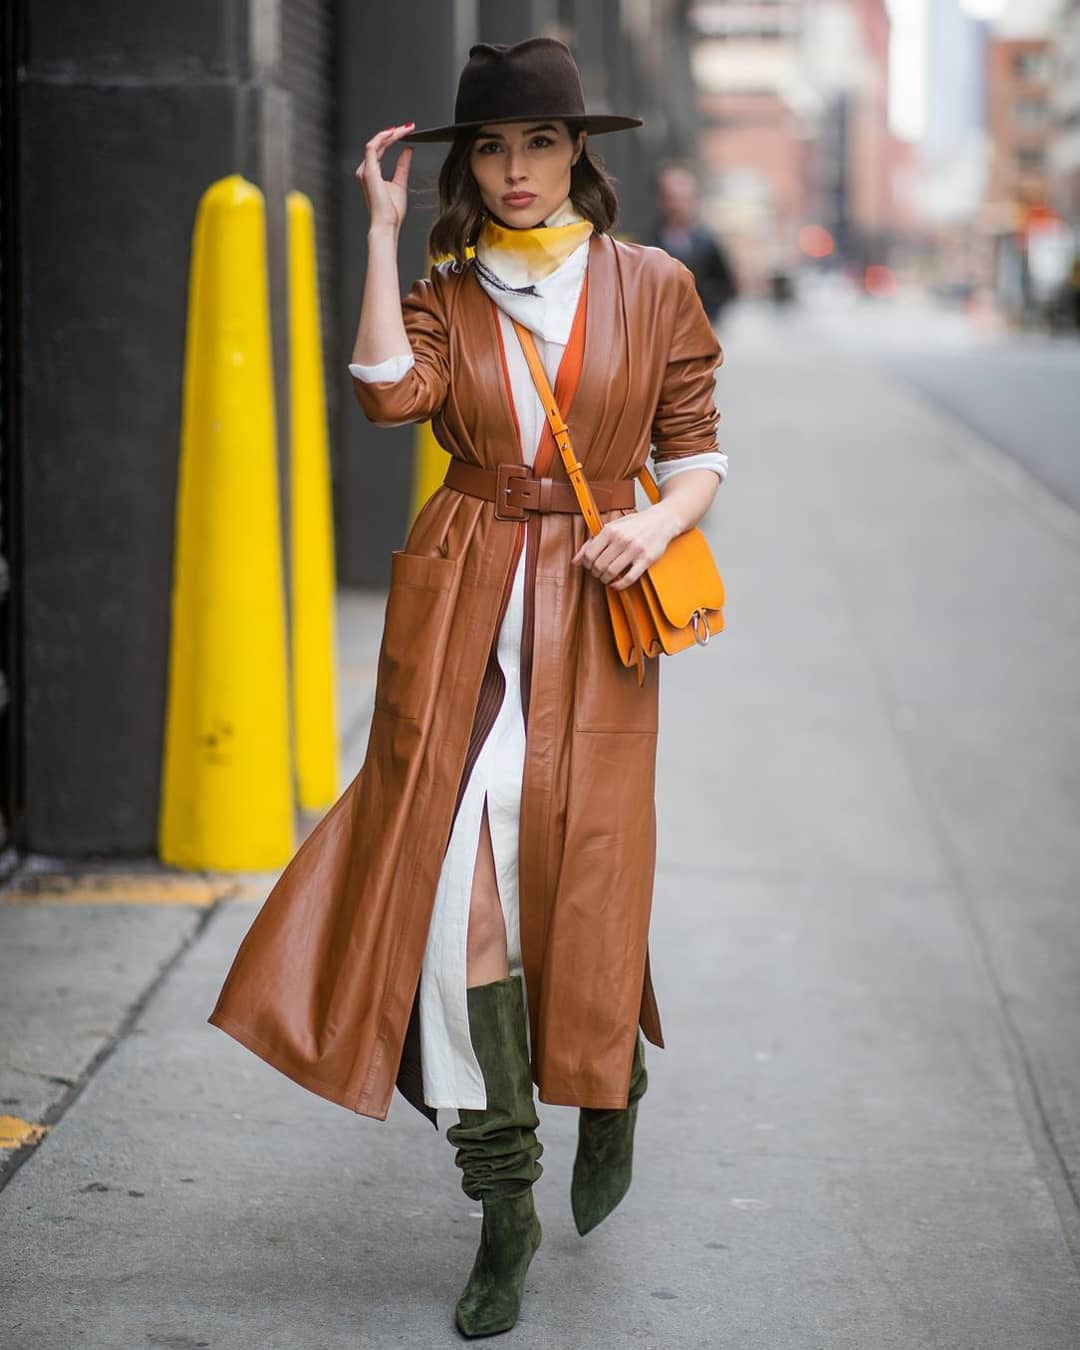 shoes knee high boots suede boots heel boots brown coat leather long coat white dress slit dress long cardigan bag scarf hat